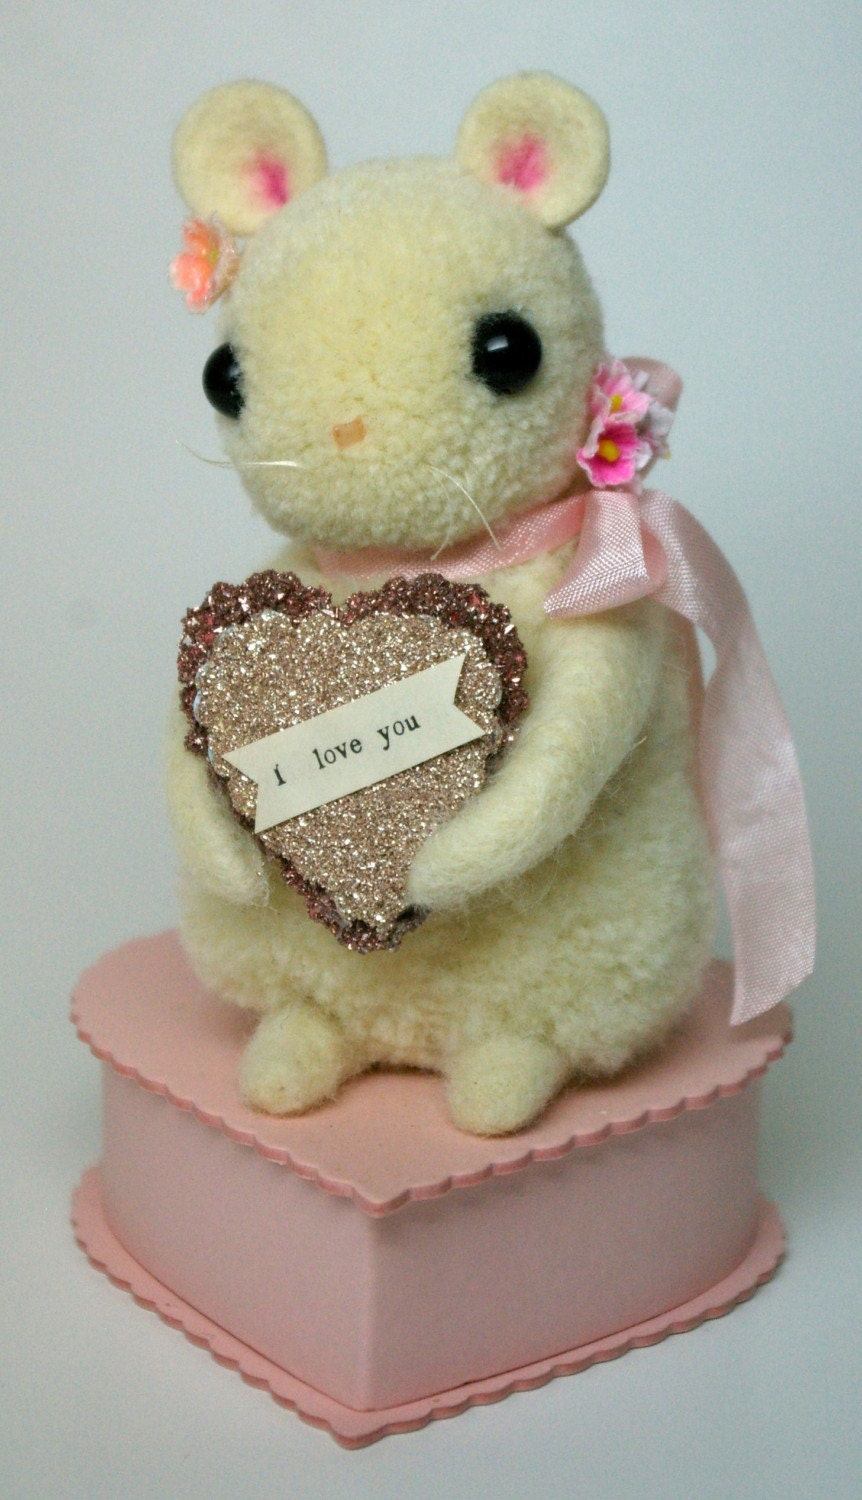 Baby Sugar Mouse - I Love You - Keepsake Box Valentine's Day